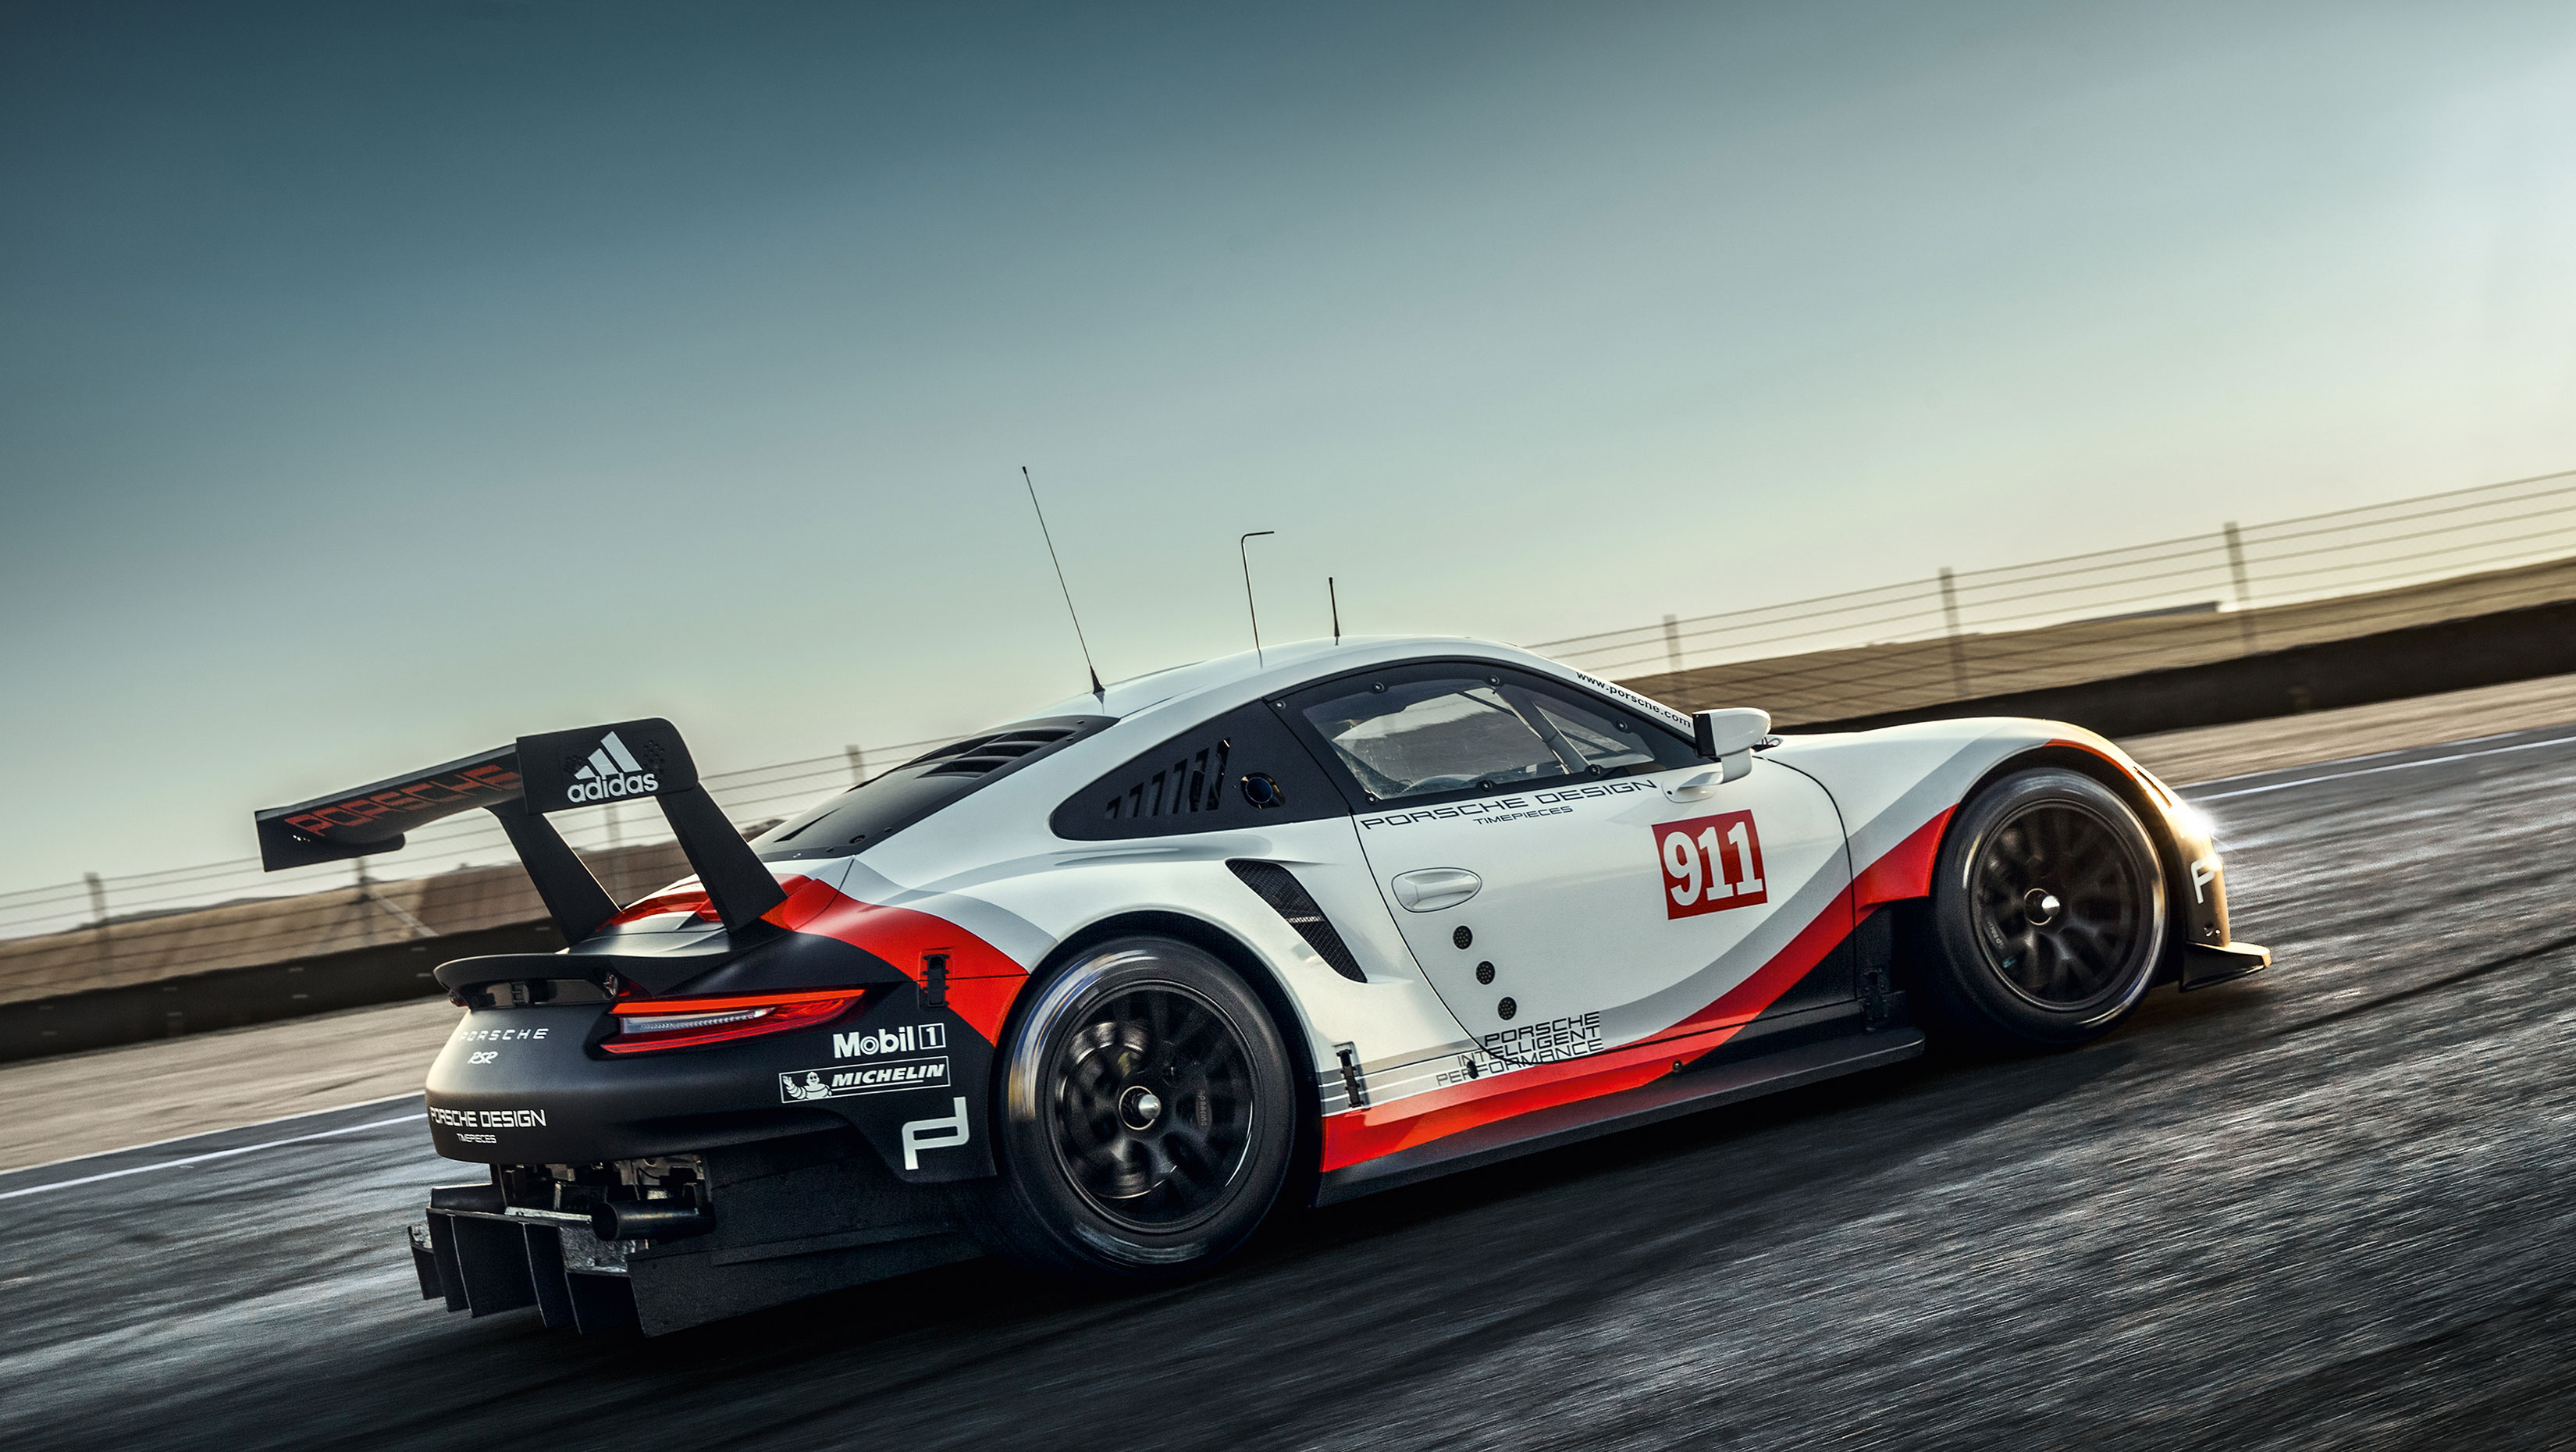 Porsche 911 RSR - 2017 - side-face / profil